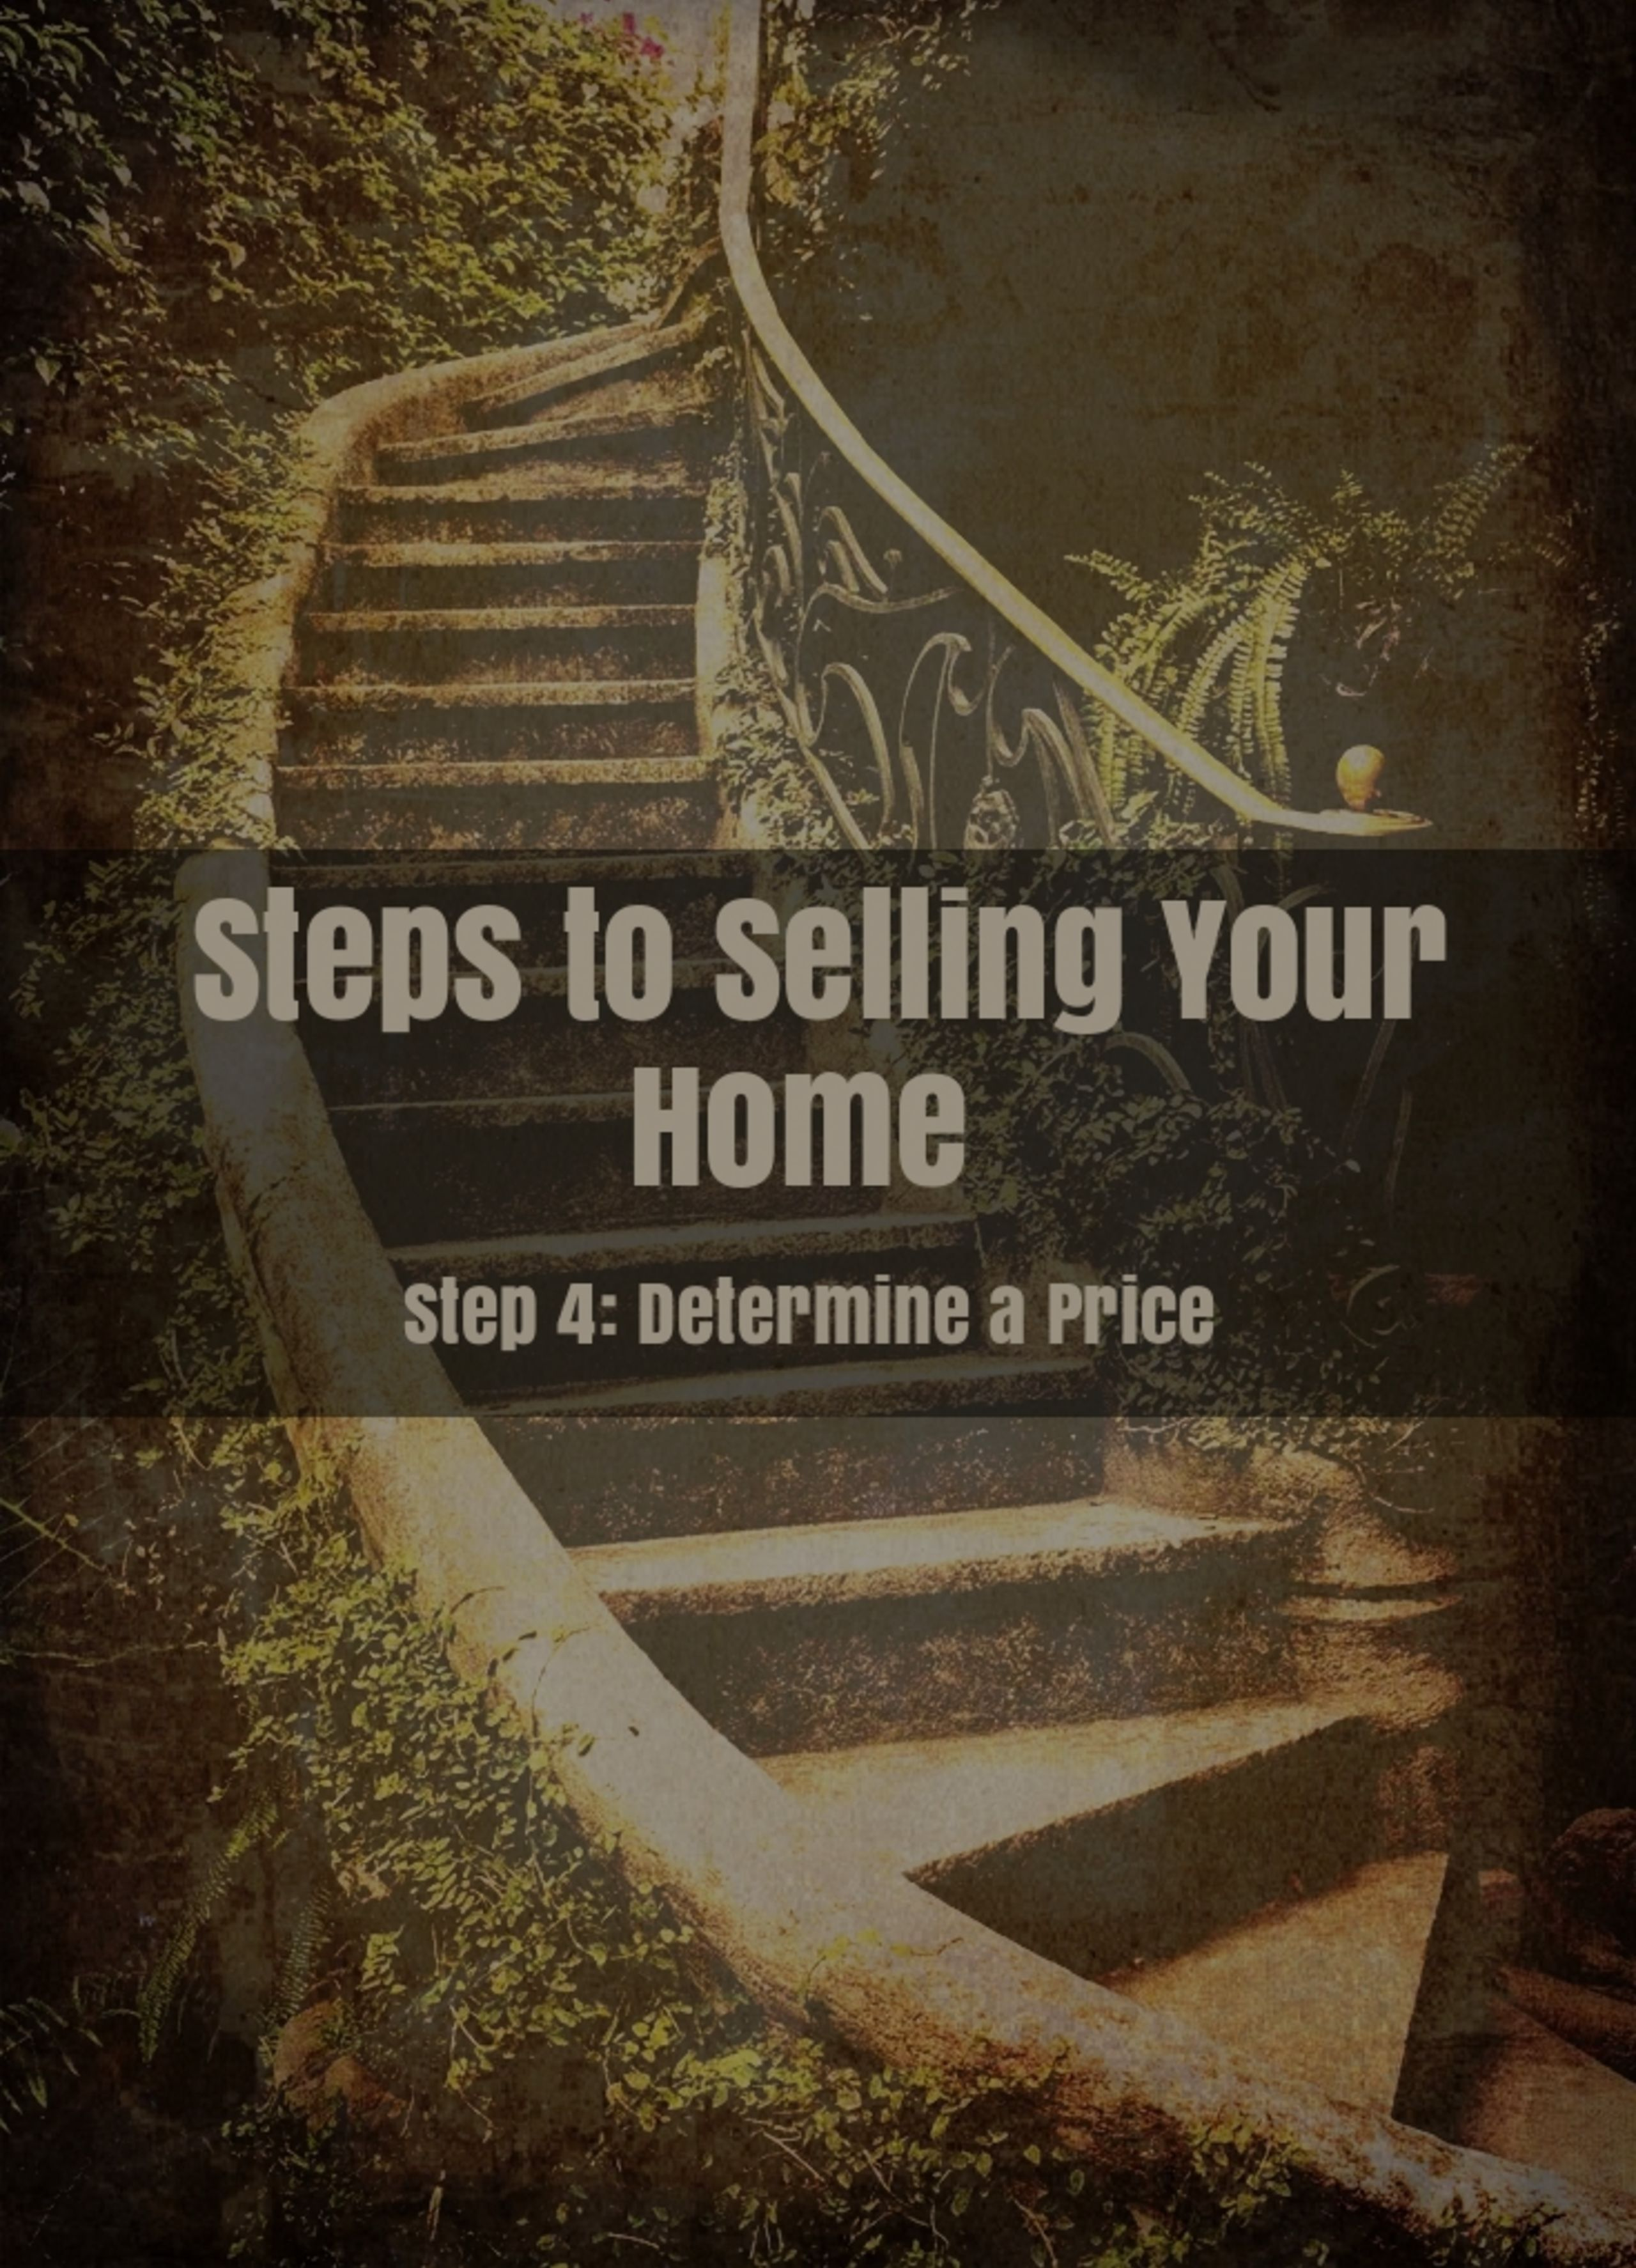 Step 4 – Determine a Price to Sell